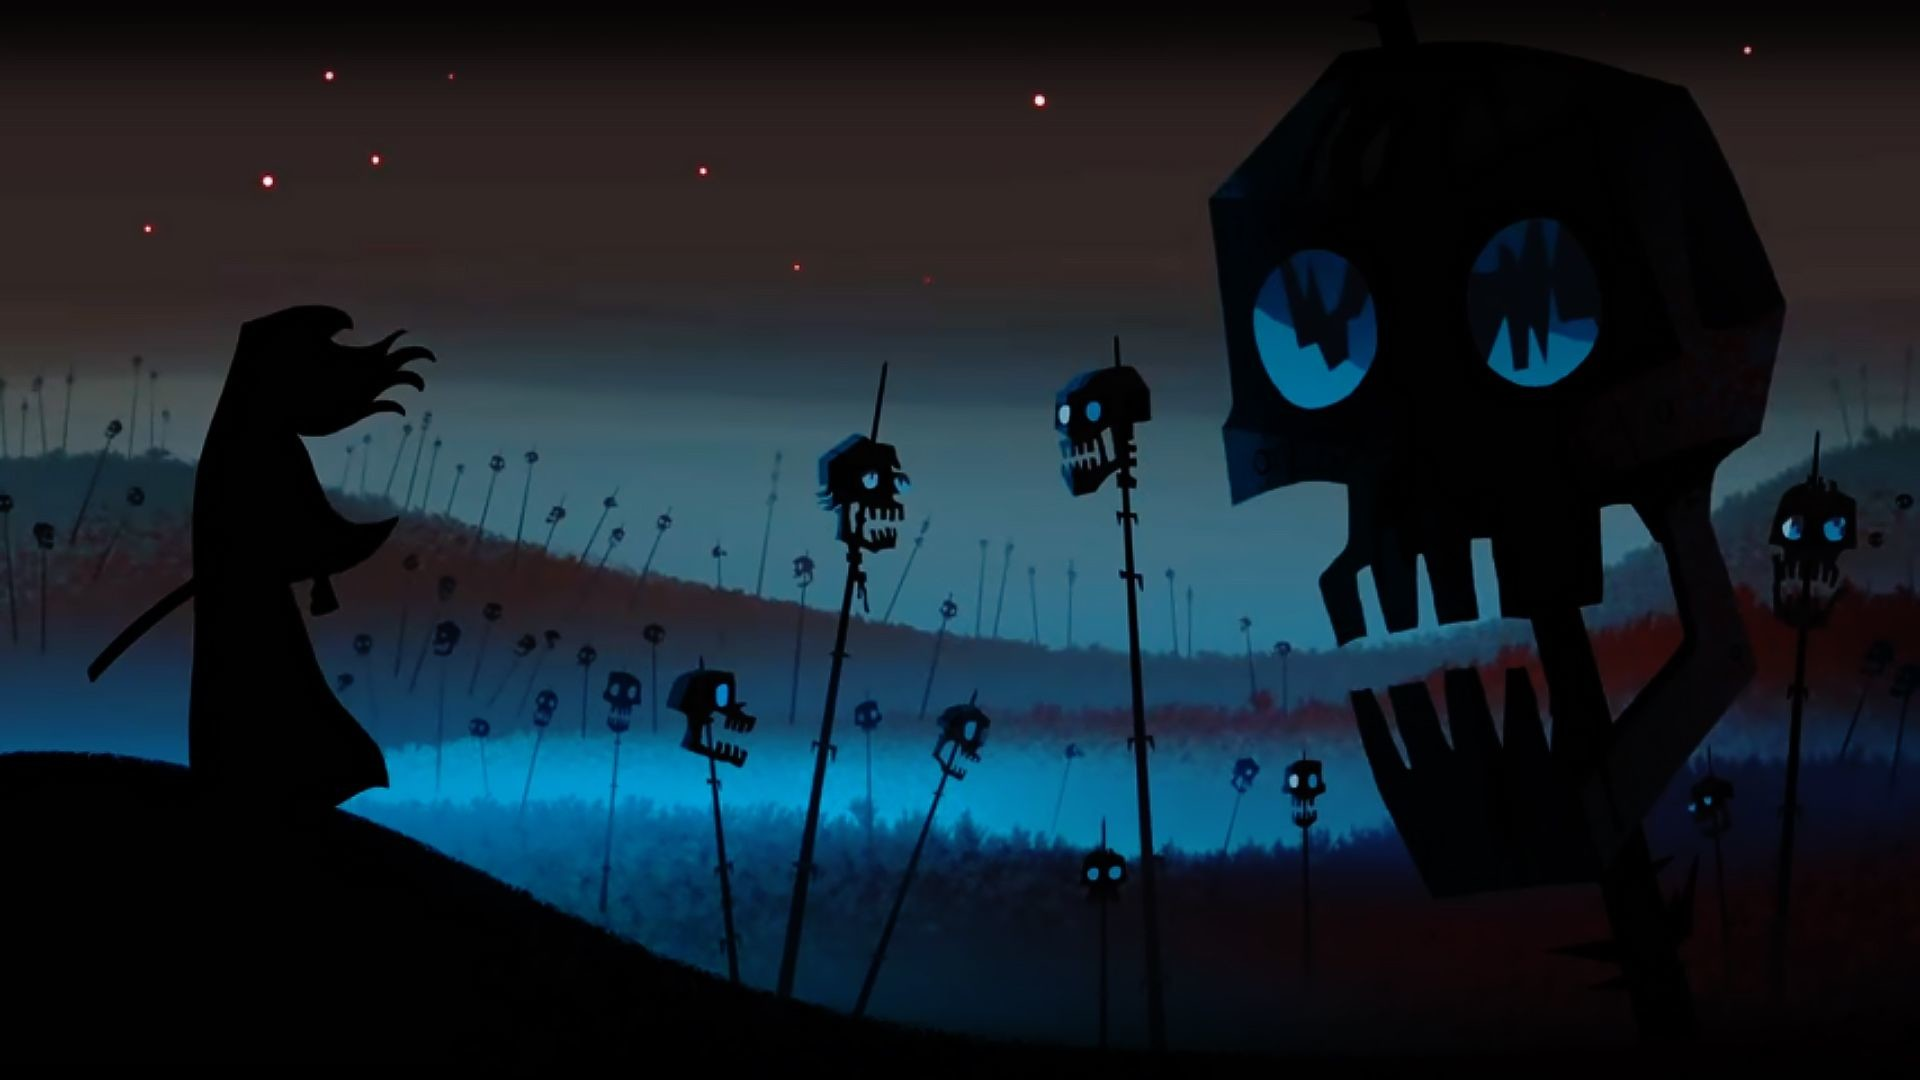 Res: 1920x1080, Pitch, Samurai Jack Background, Jack O'connell, Desktop, Environment,  Wicked, Ios, Android, Backgrounds